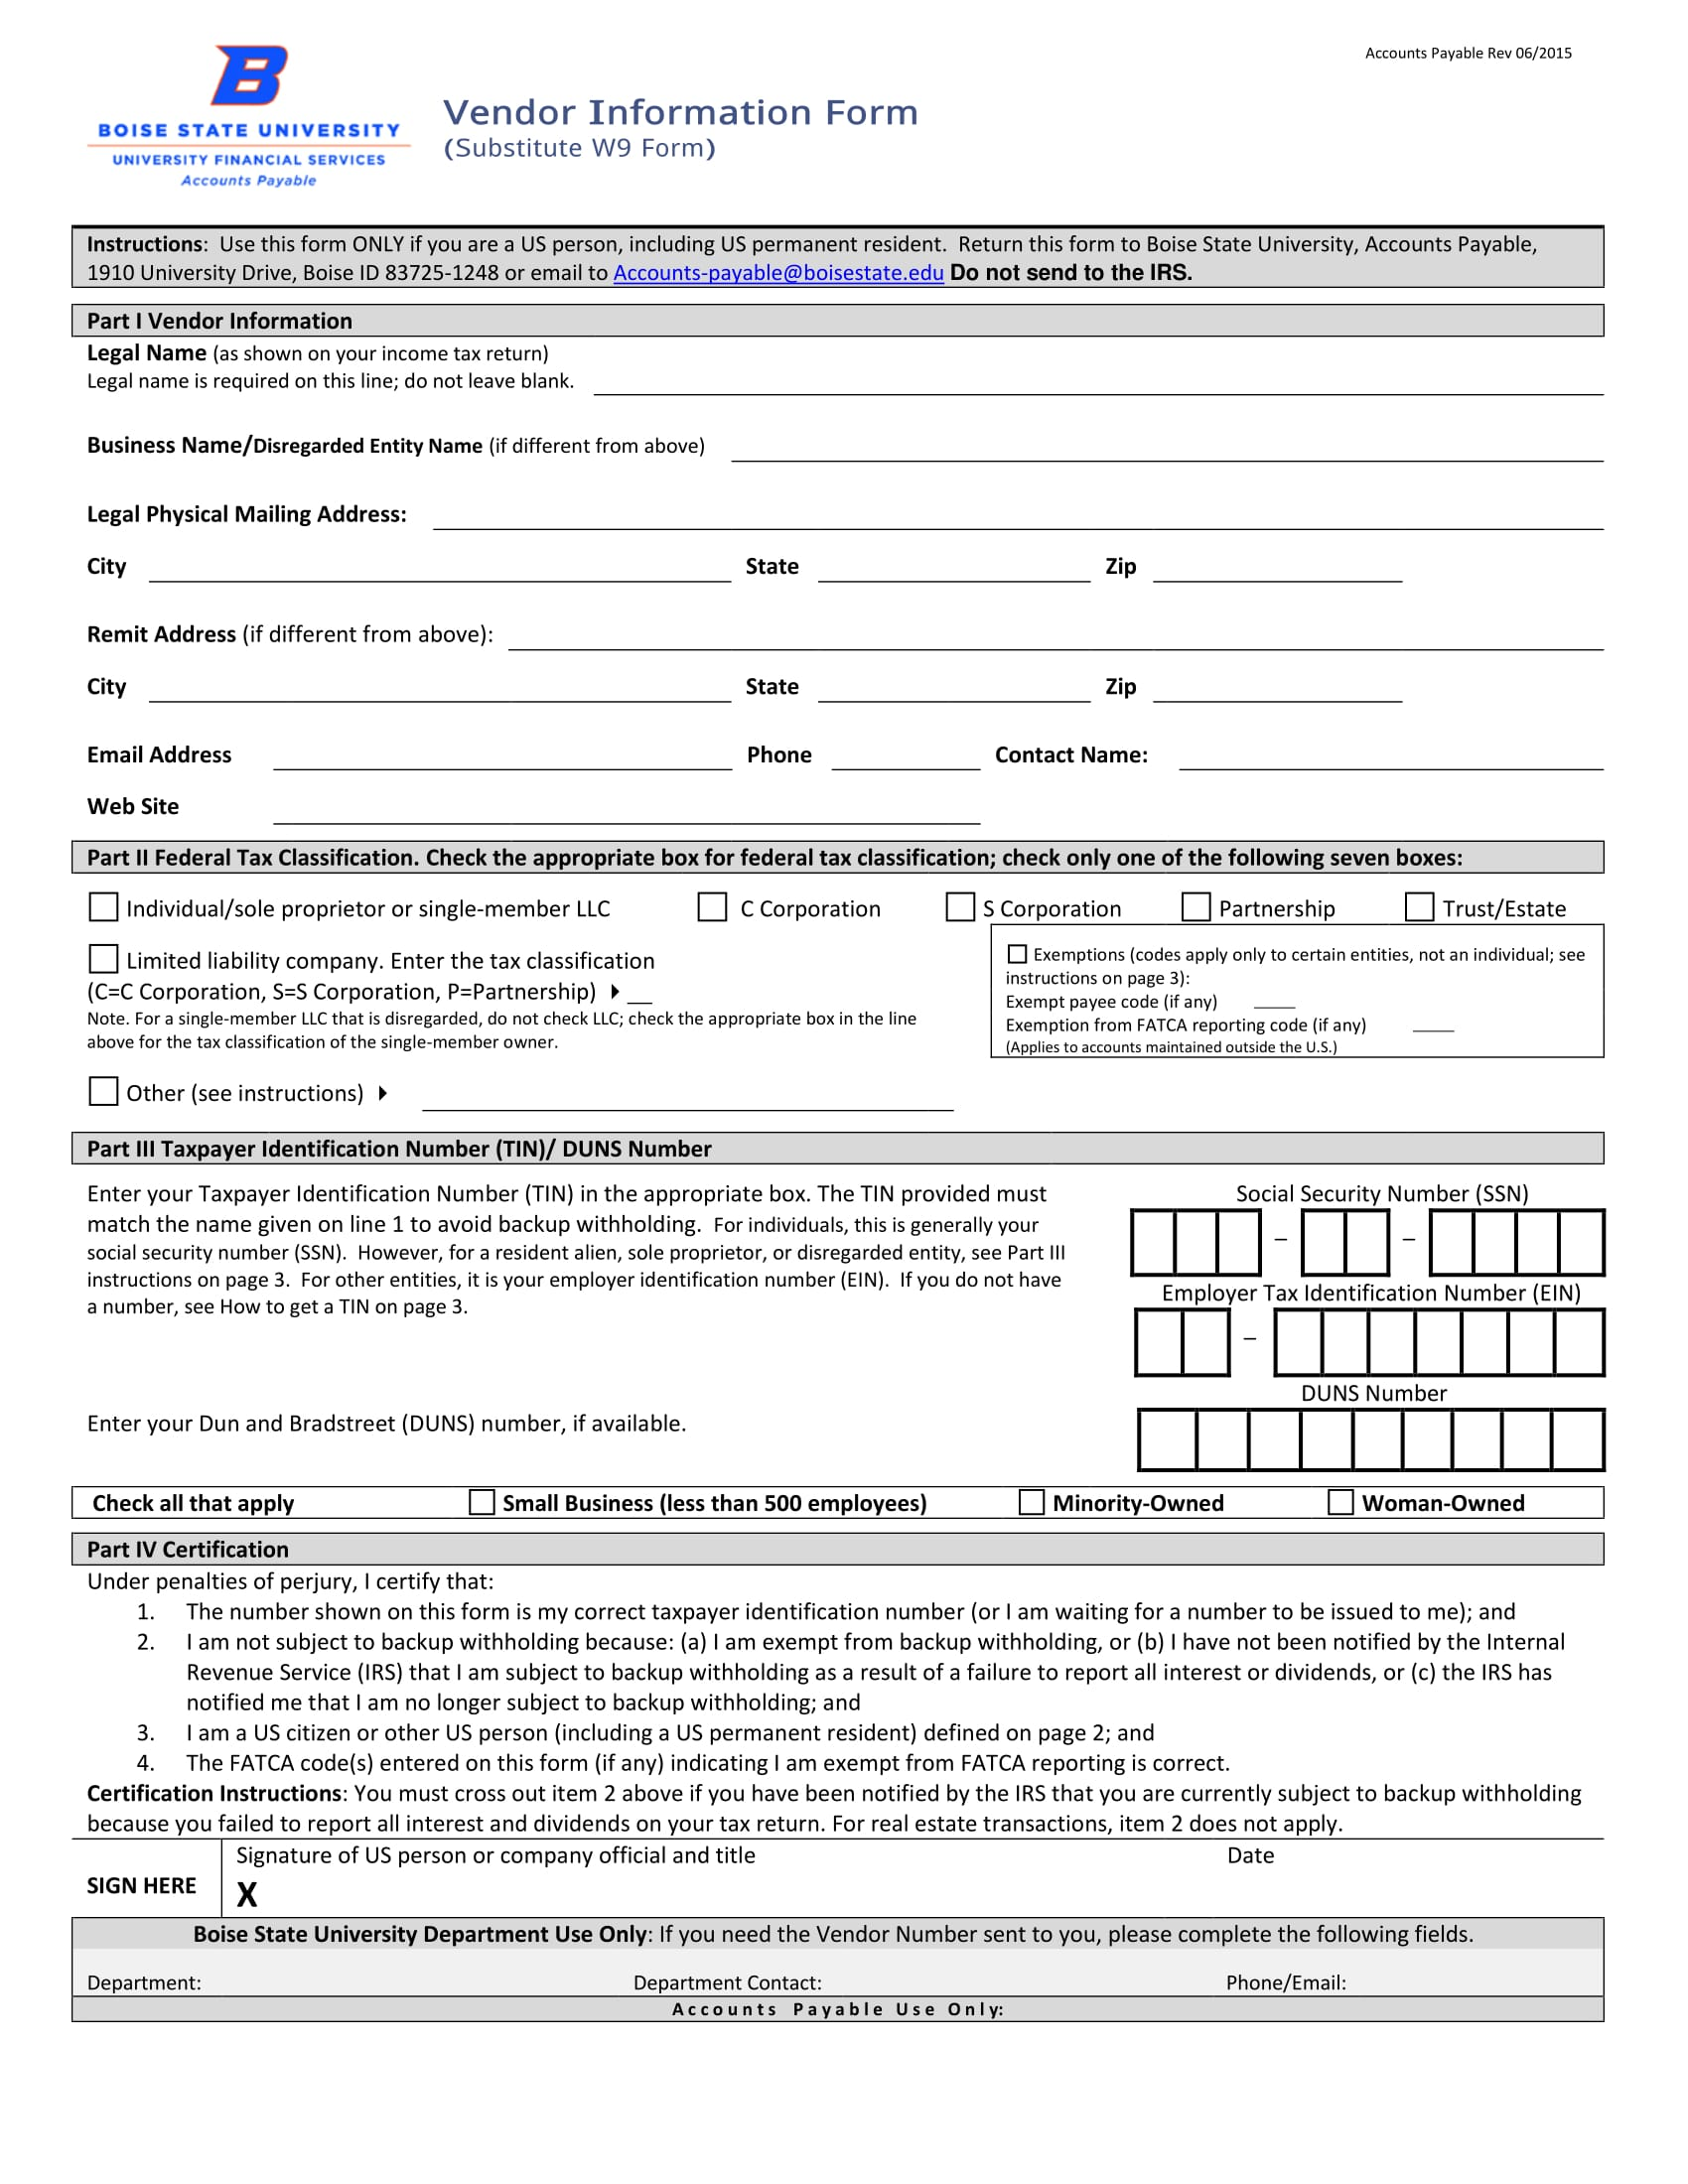 vendor information form 1